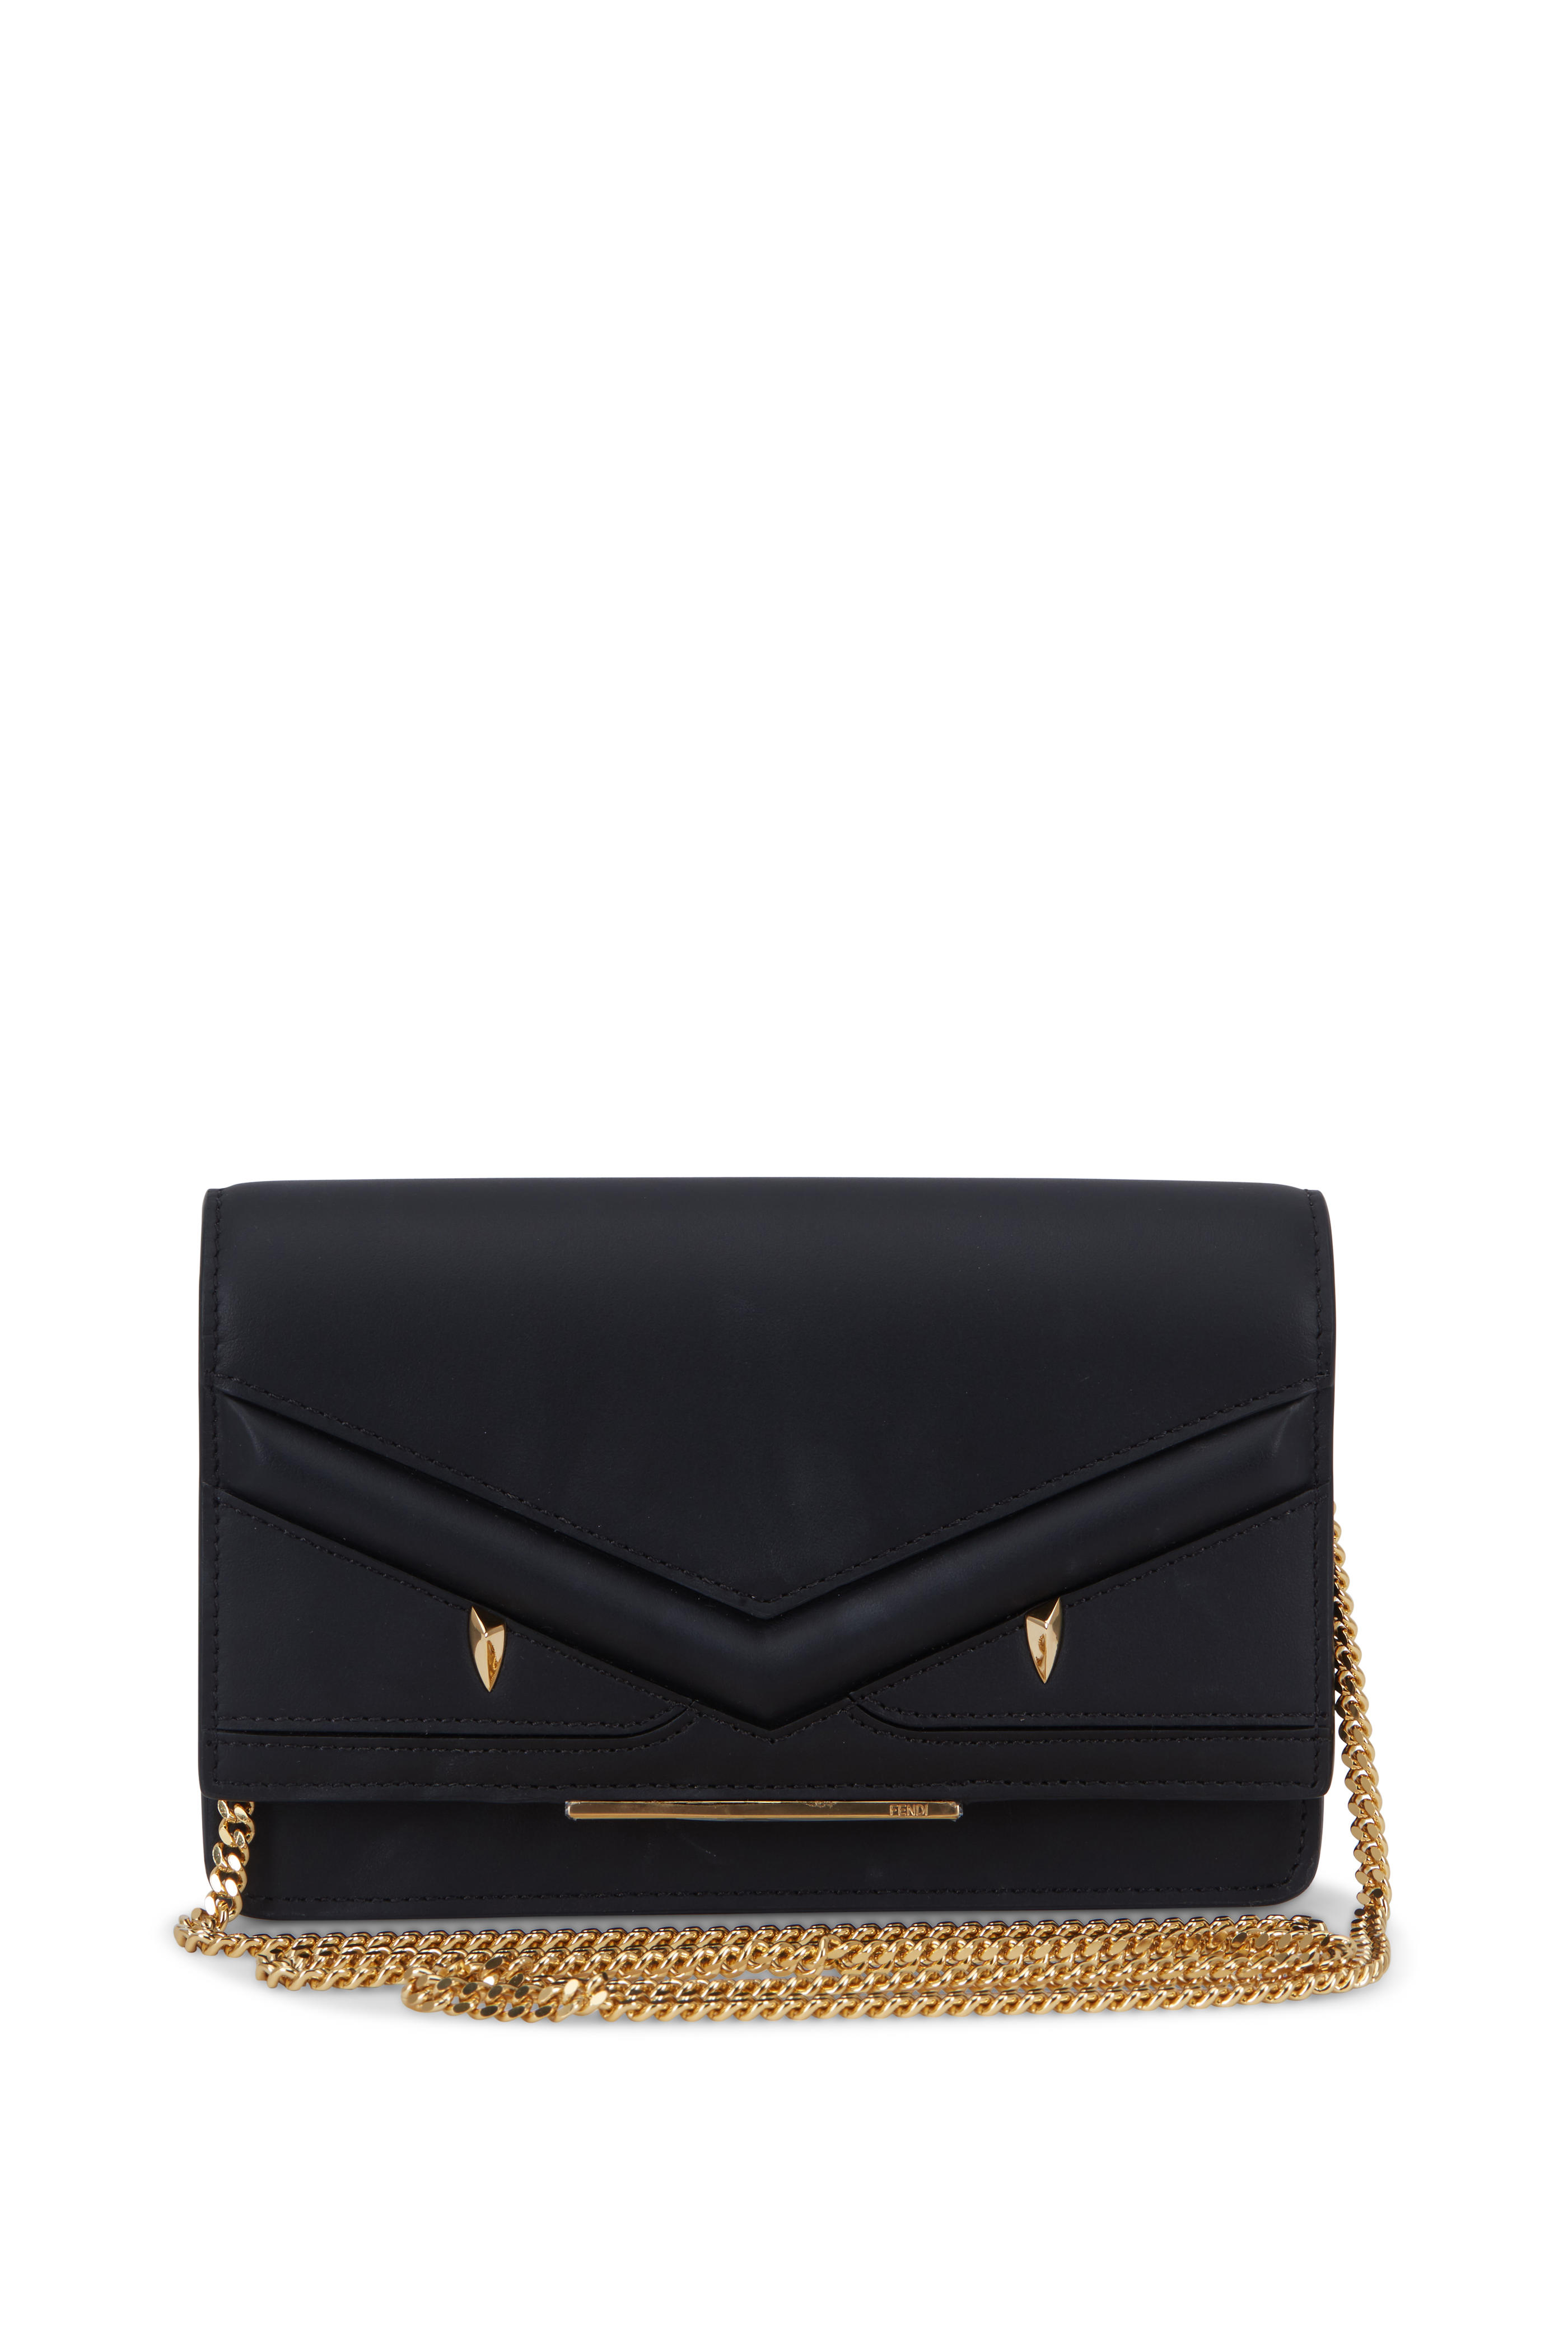 1a569631c0 Fendi - Bag Bugs Black Leather Chain Mini Bag | Mitchell Stores